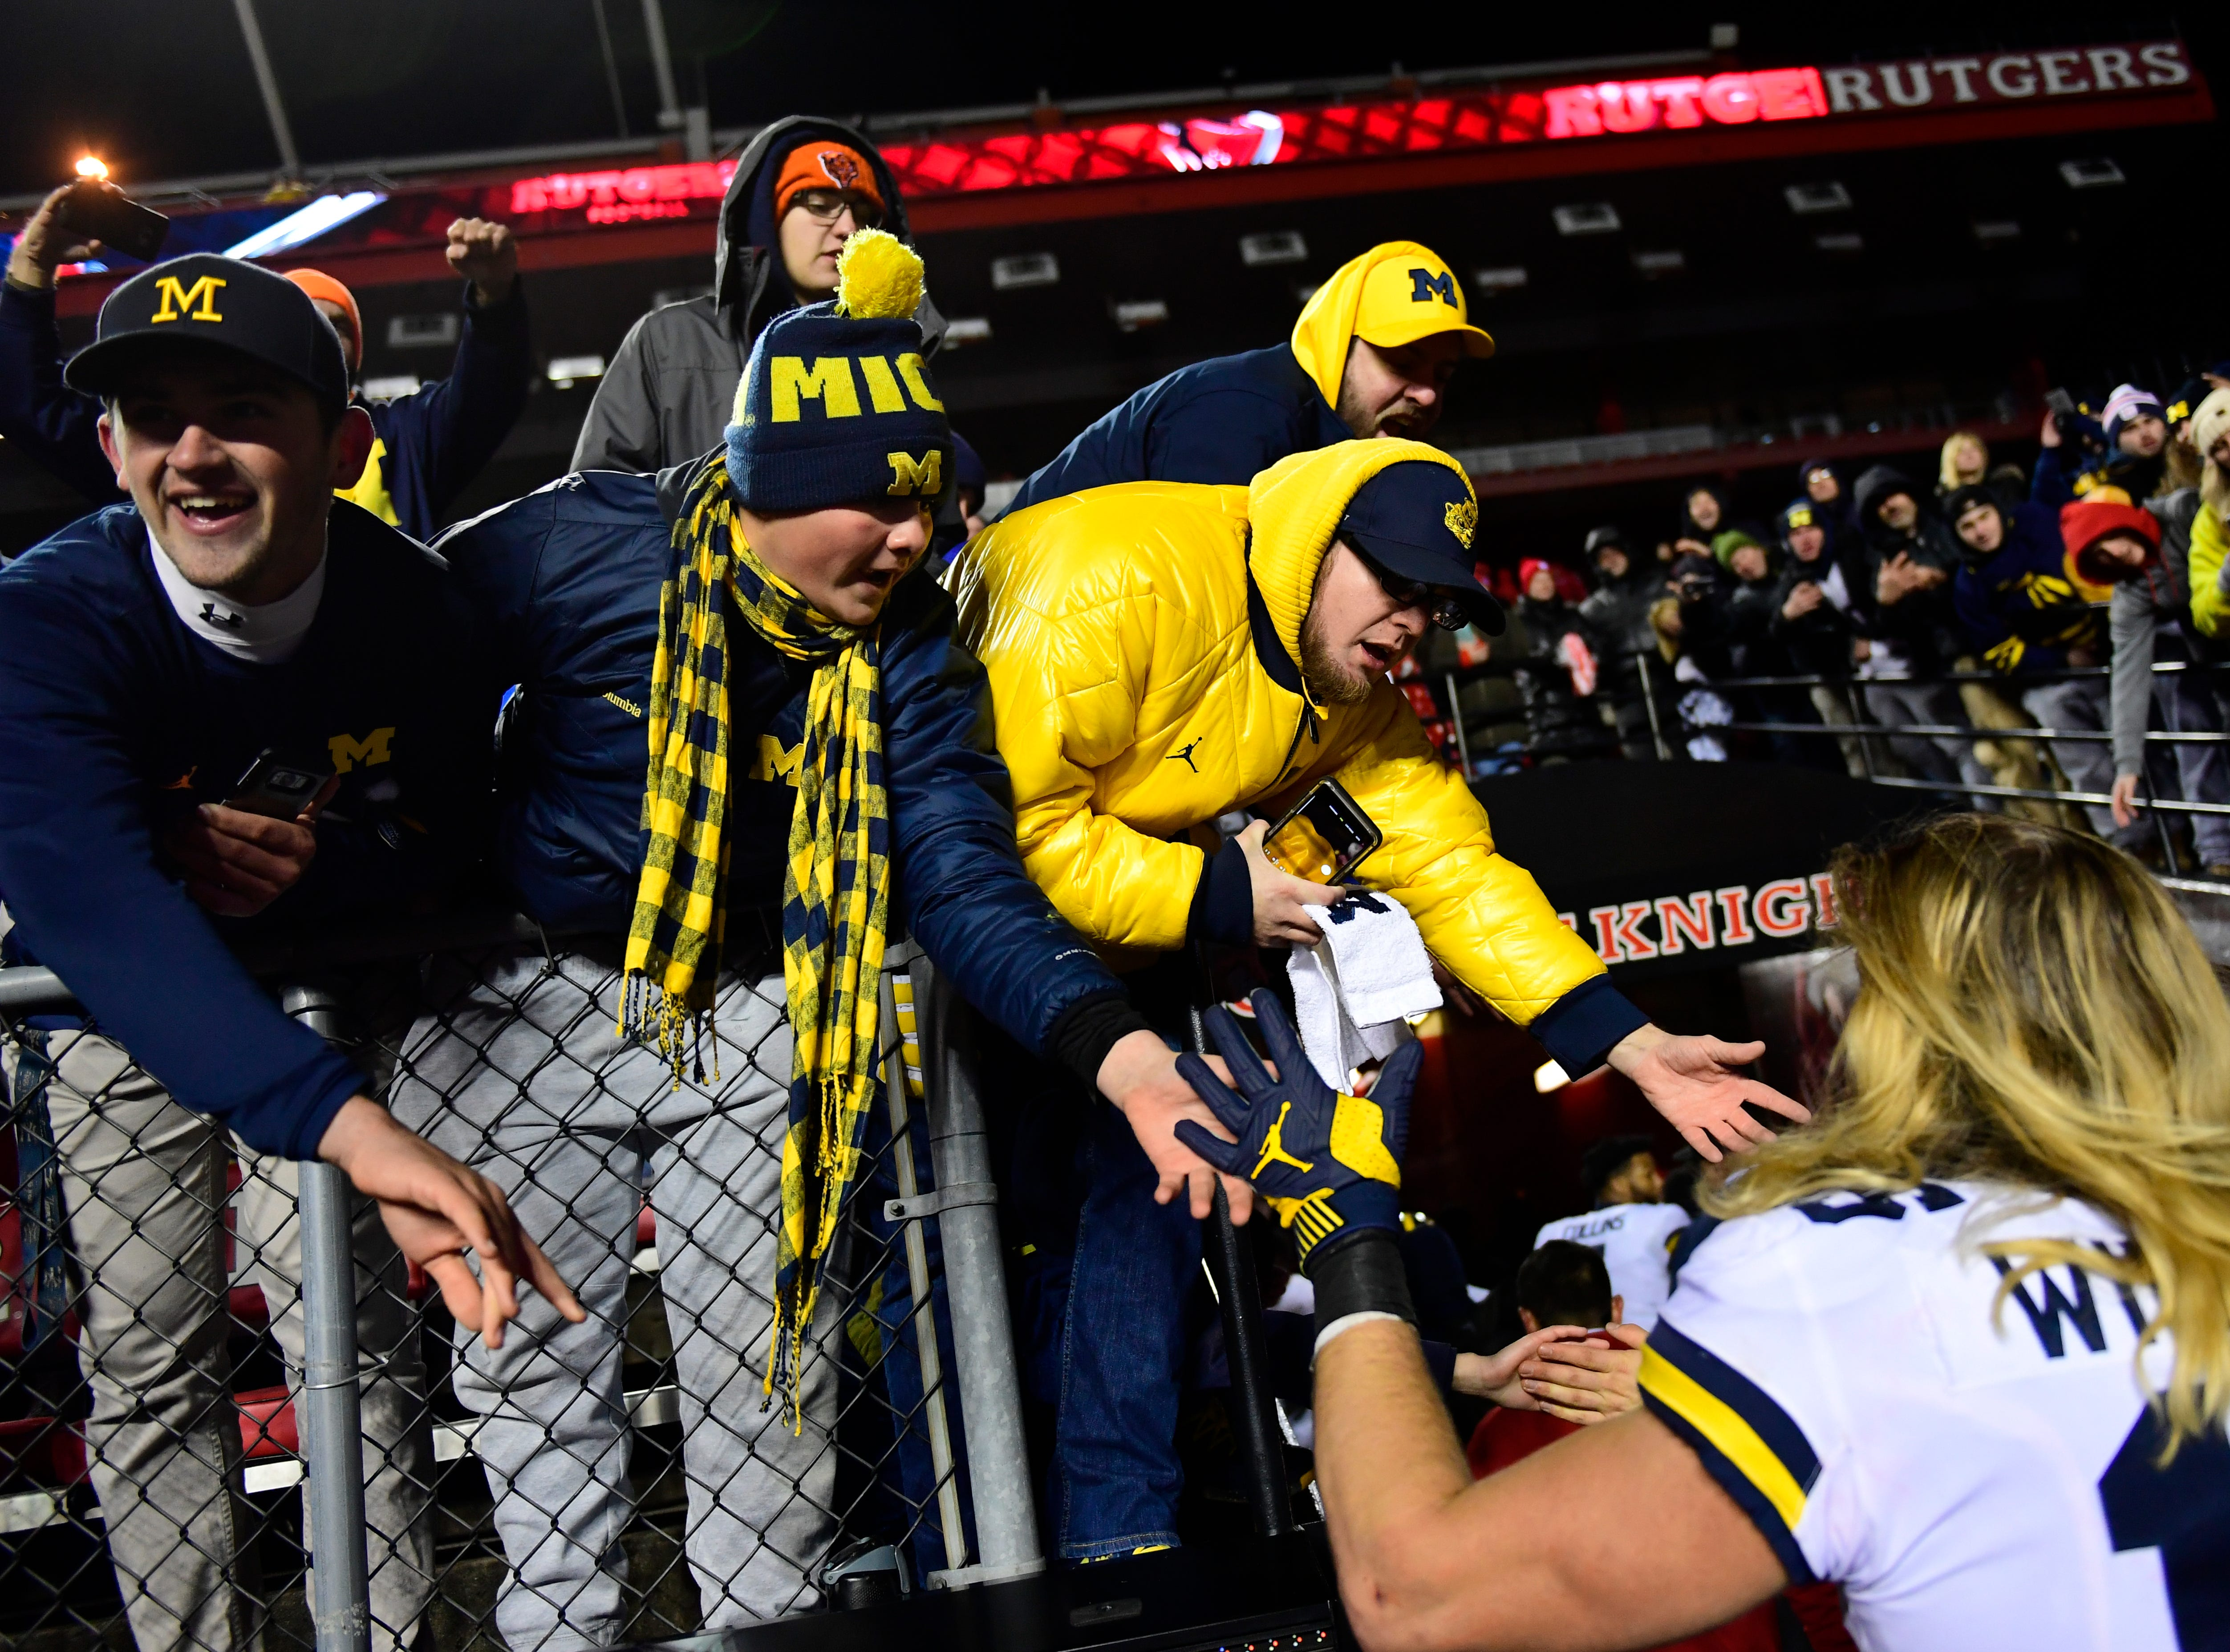 Michigan fans high-five Chase Winovich after the game.